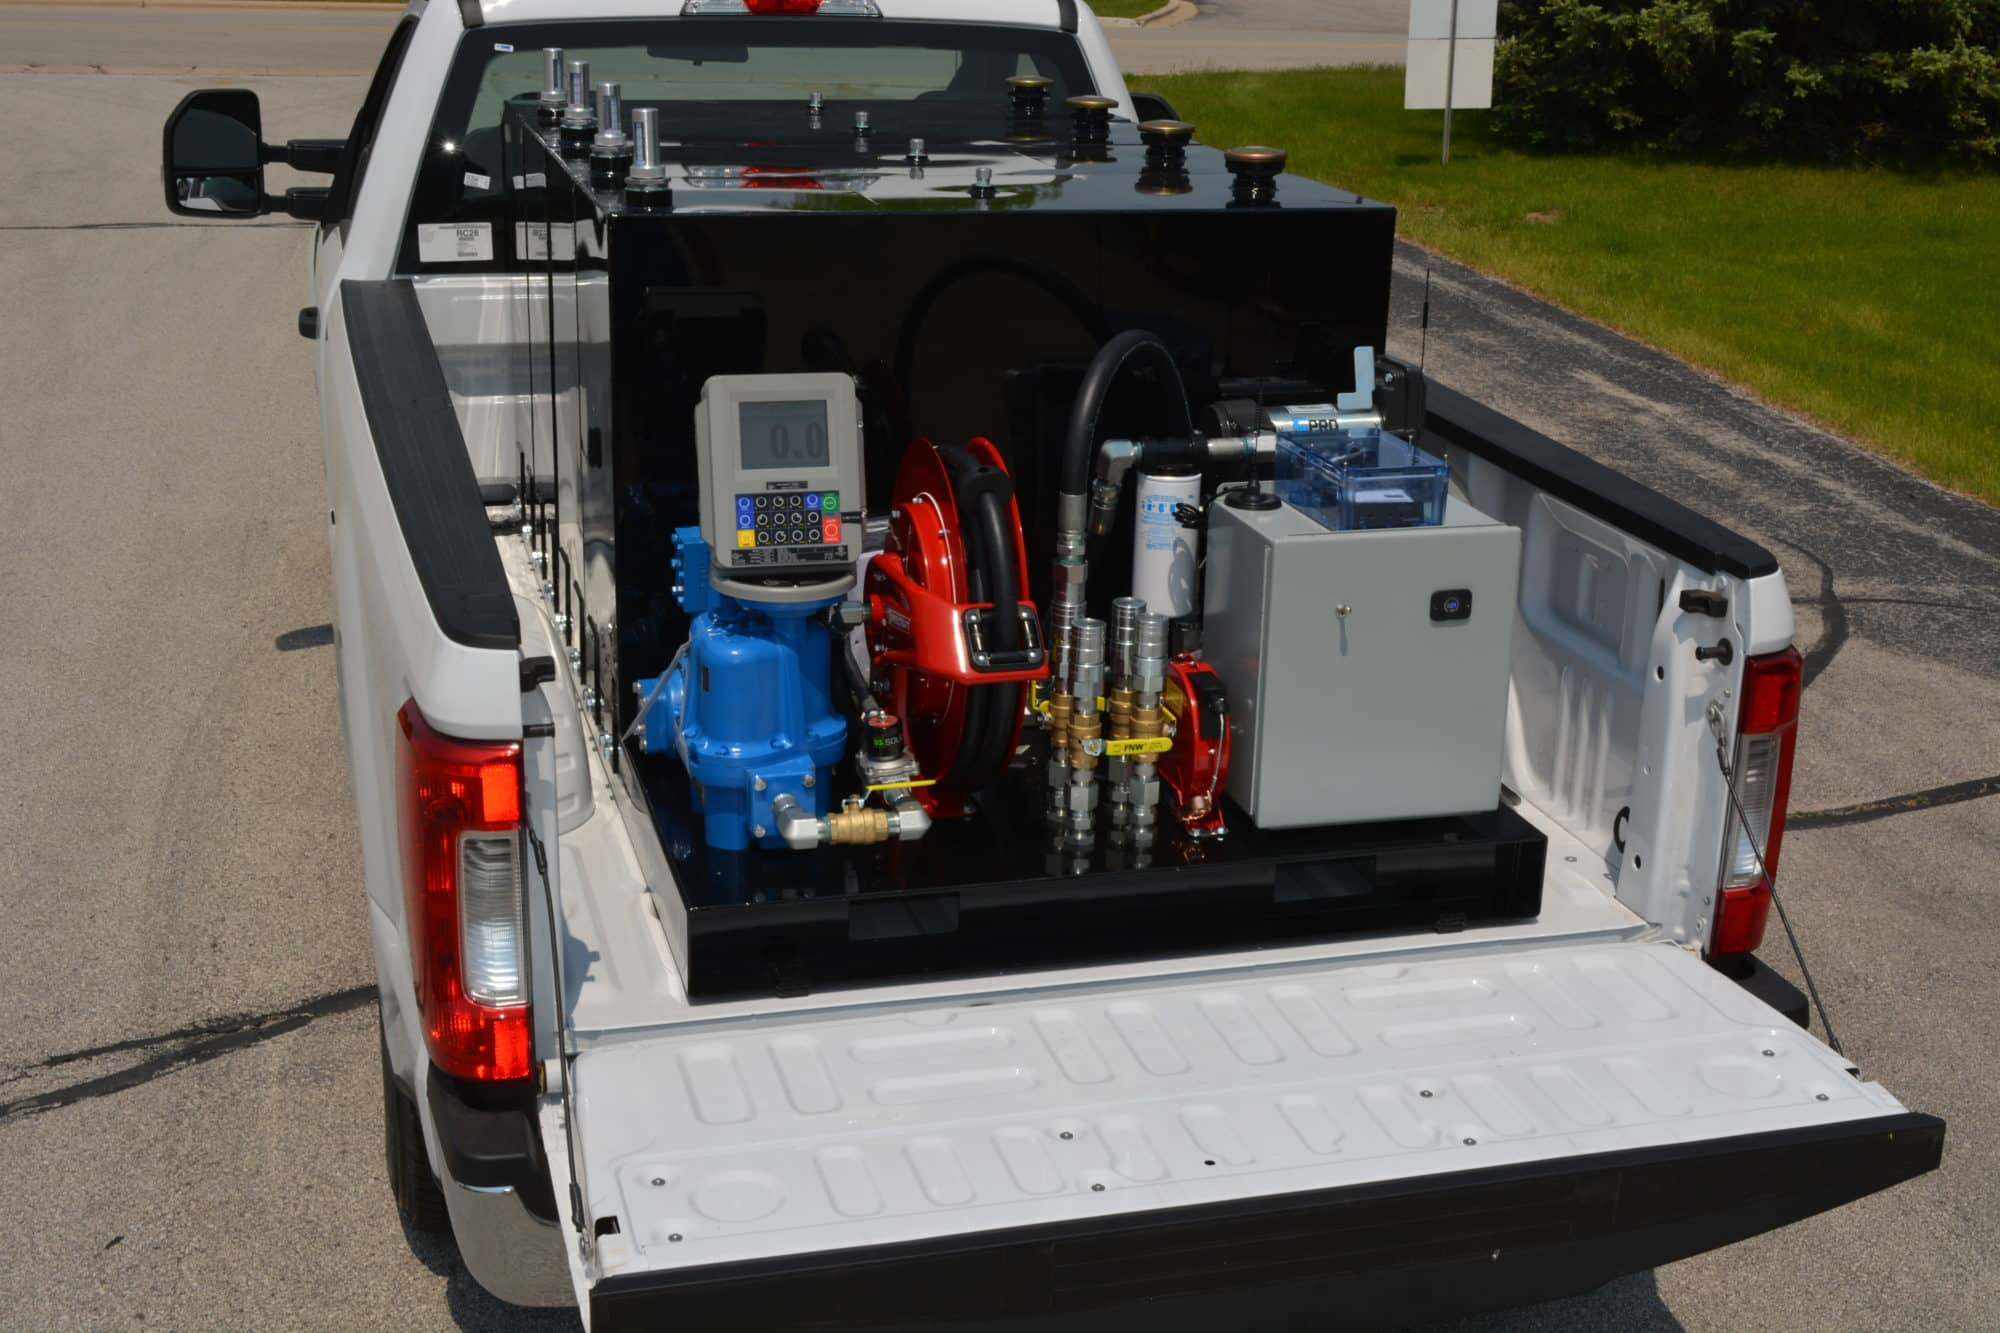 Larger fleets benefit from this 400-gallon fuel trailer alternative